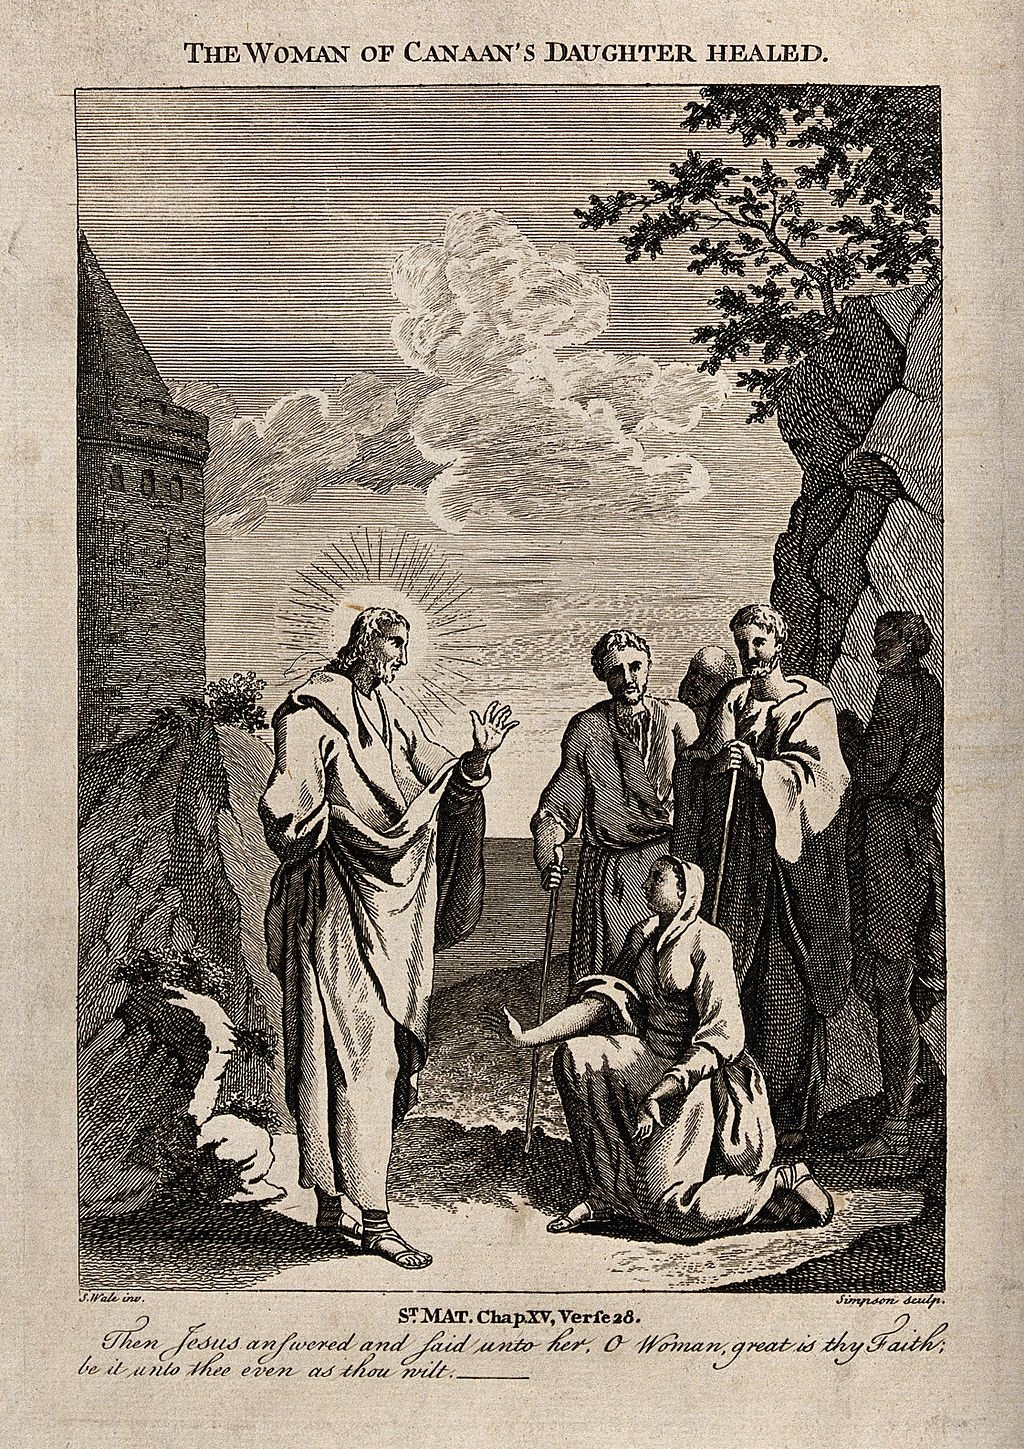 Christ_heals_the_daughter_of_the_woman_of_Canaan._Etching_by_Wellcome_V0034891